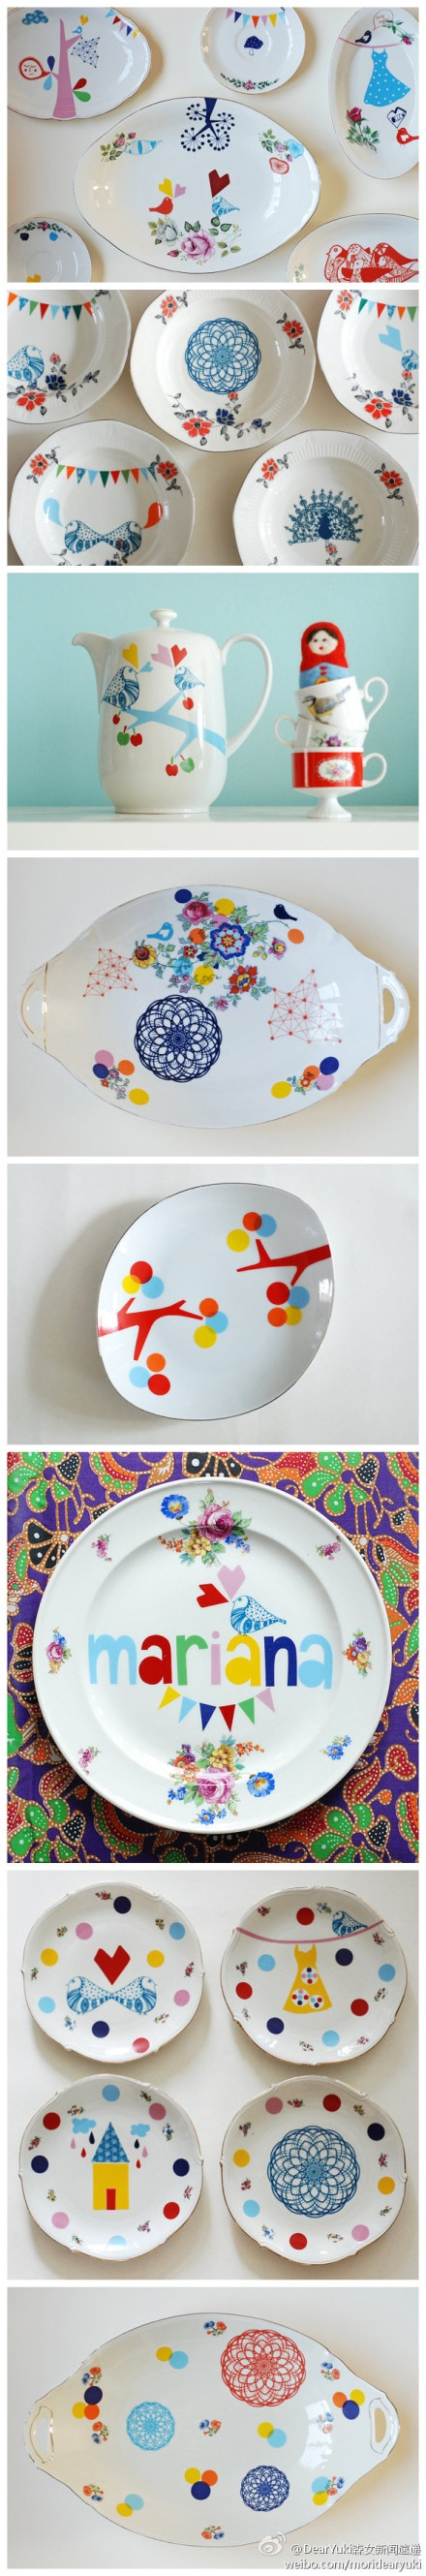 just love this d.i.y porcelain painting